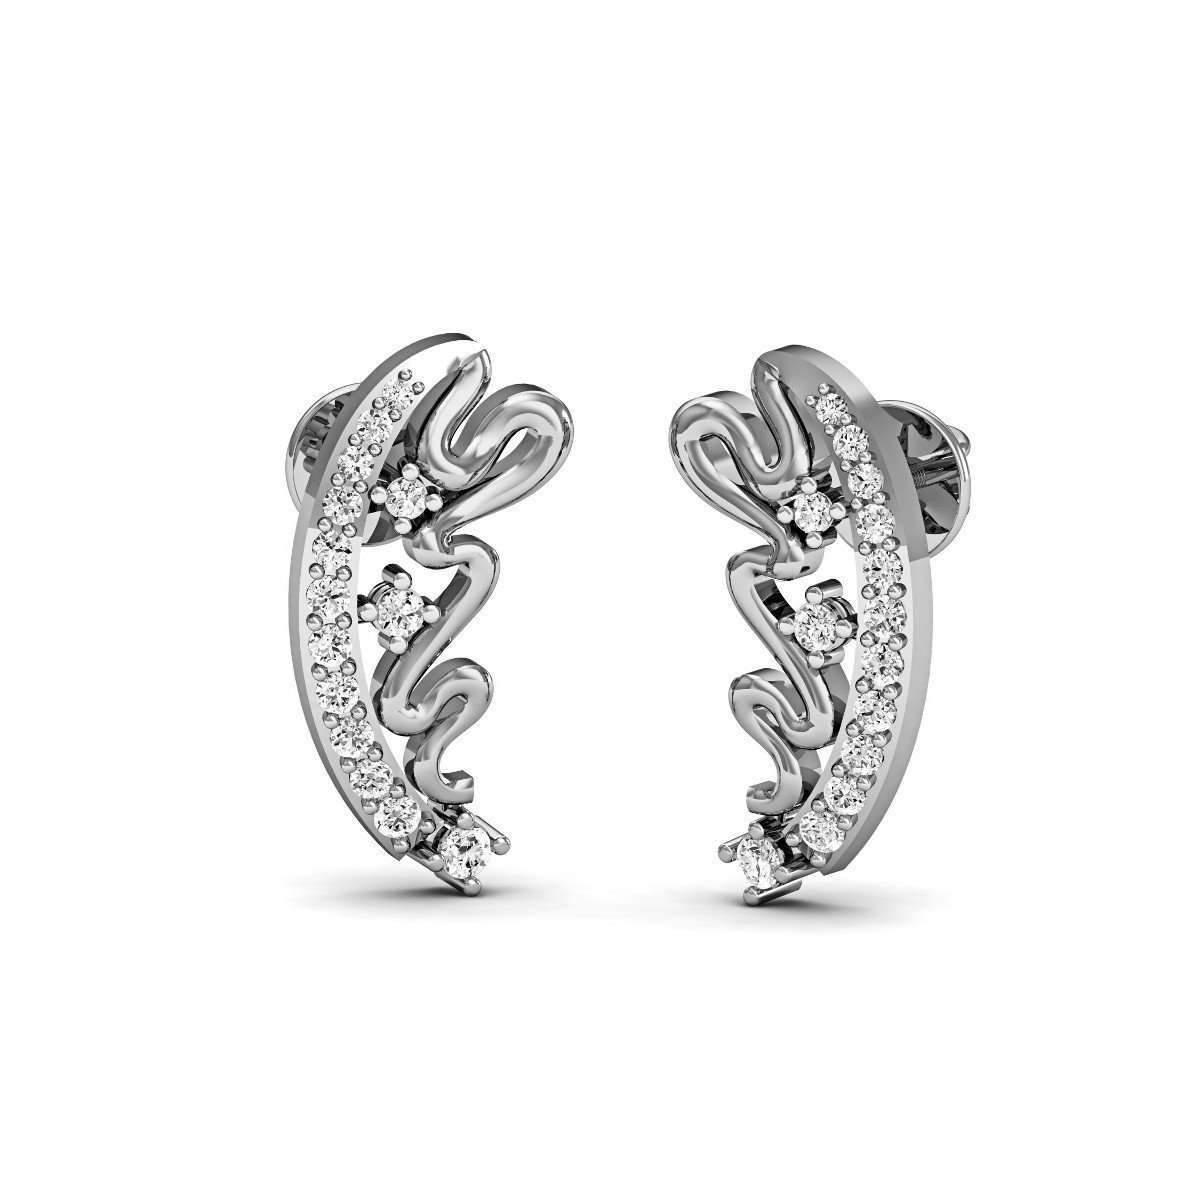 Diamoire Jewels Hand-carved Earrings in 18kt White Gold with Round Cut Diamonds gwhoM9